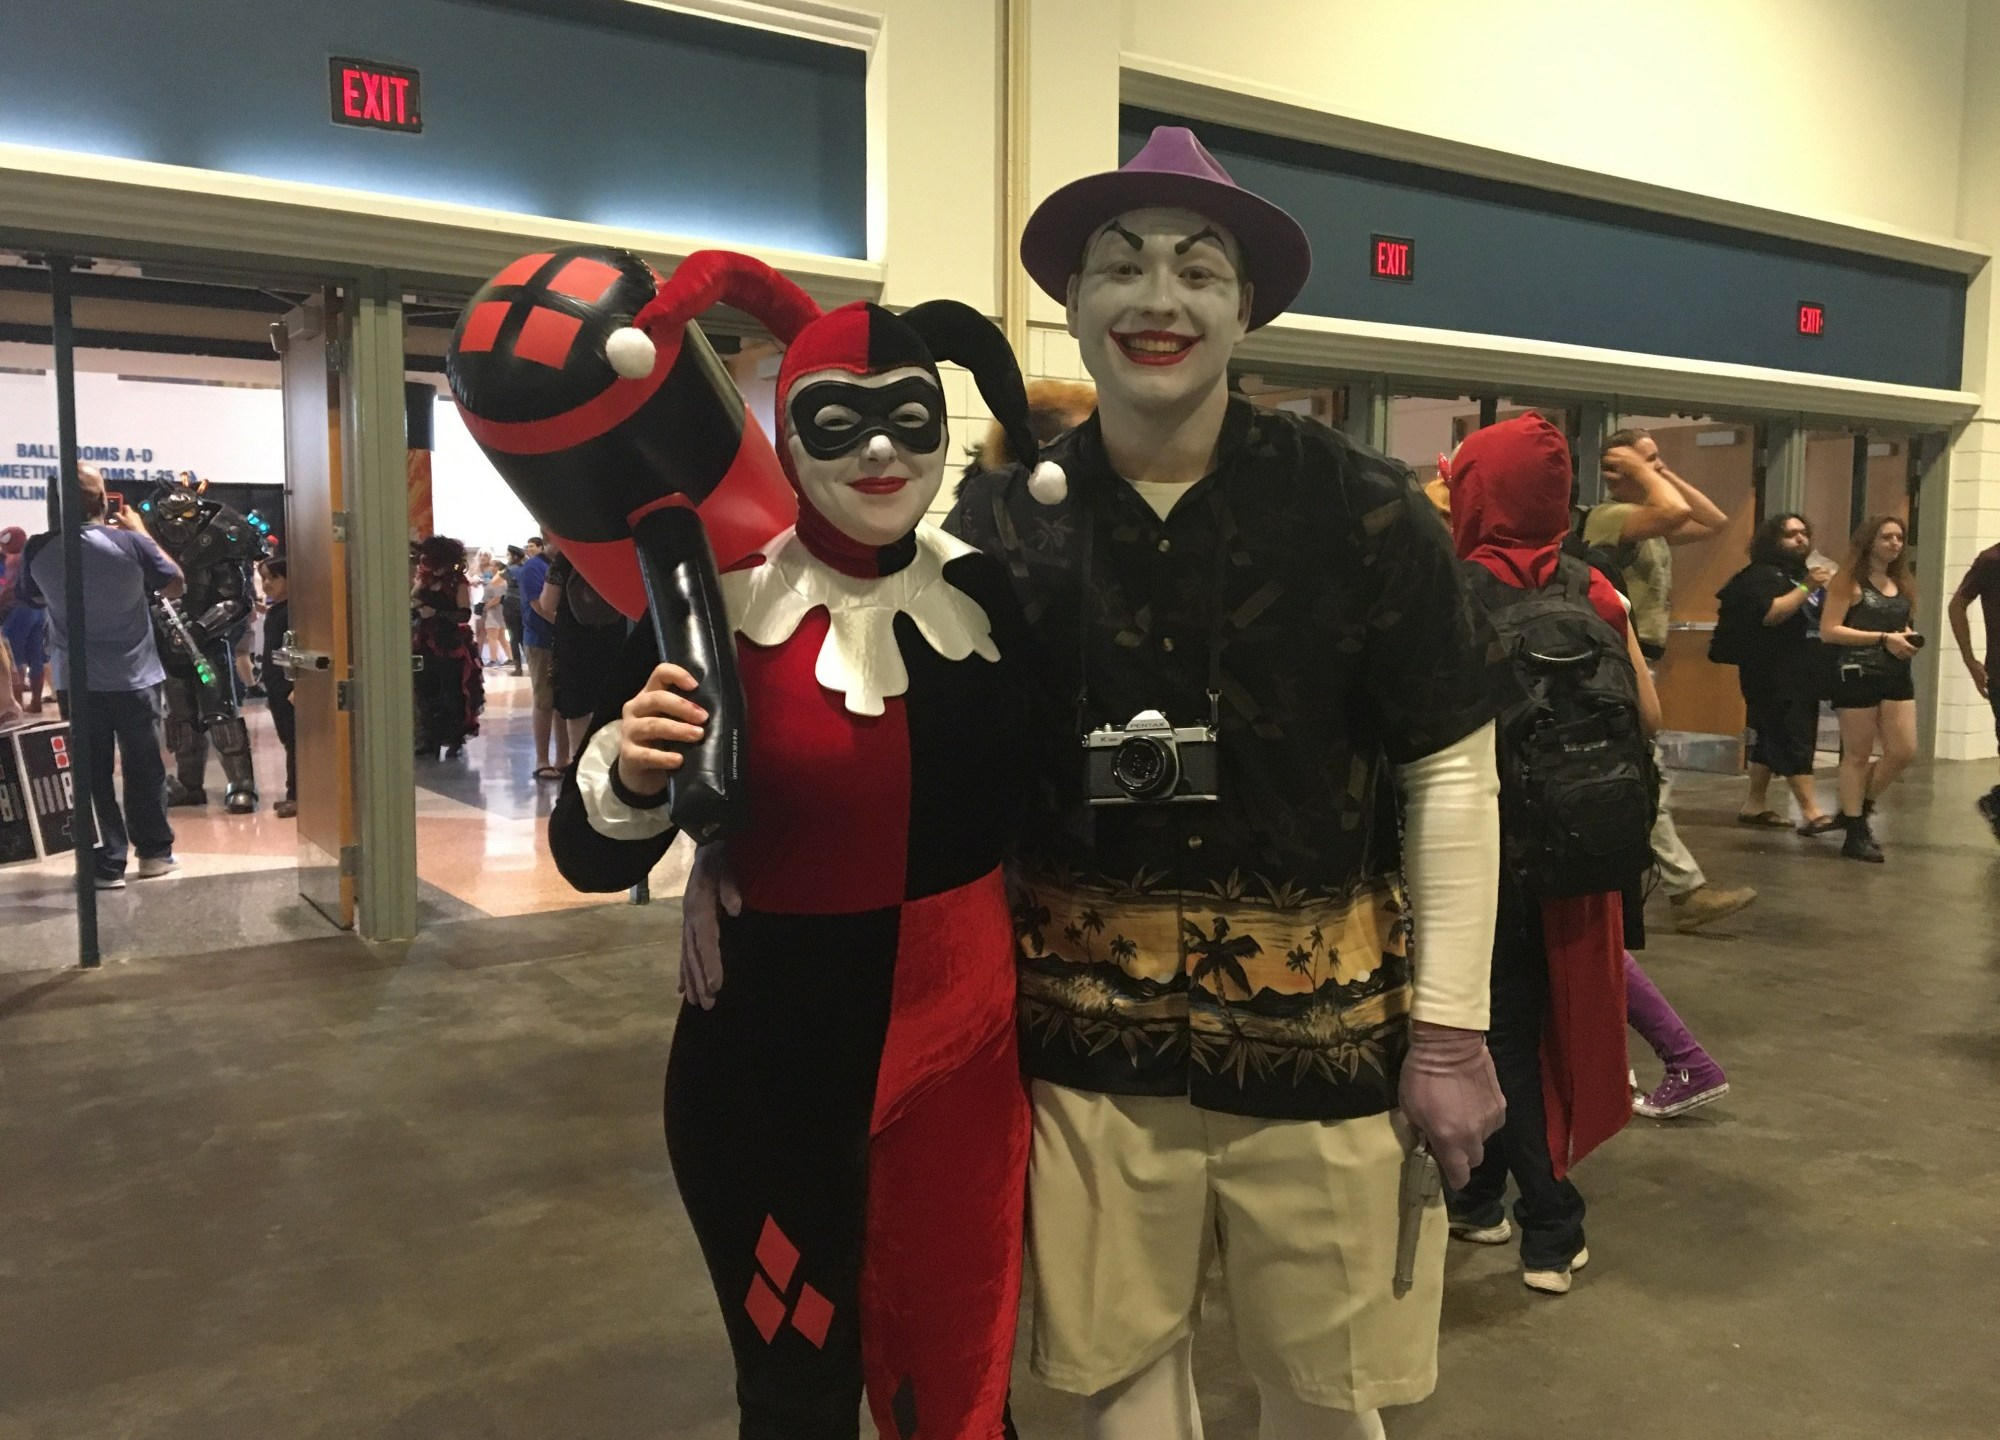 Tampa Bay Comic Convention: What to know, where to watch